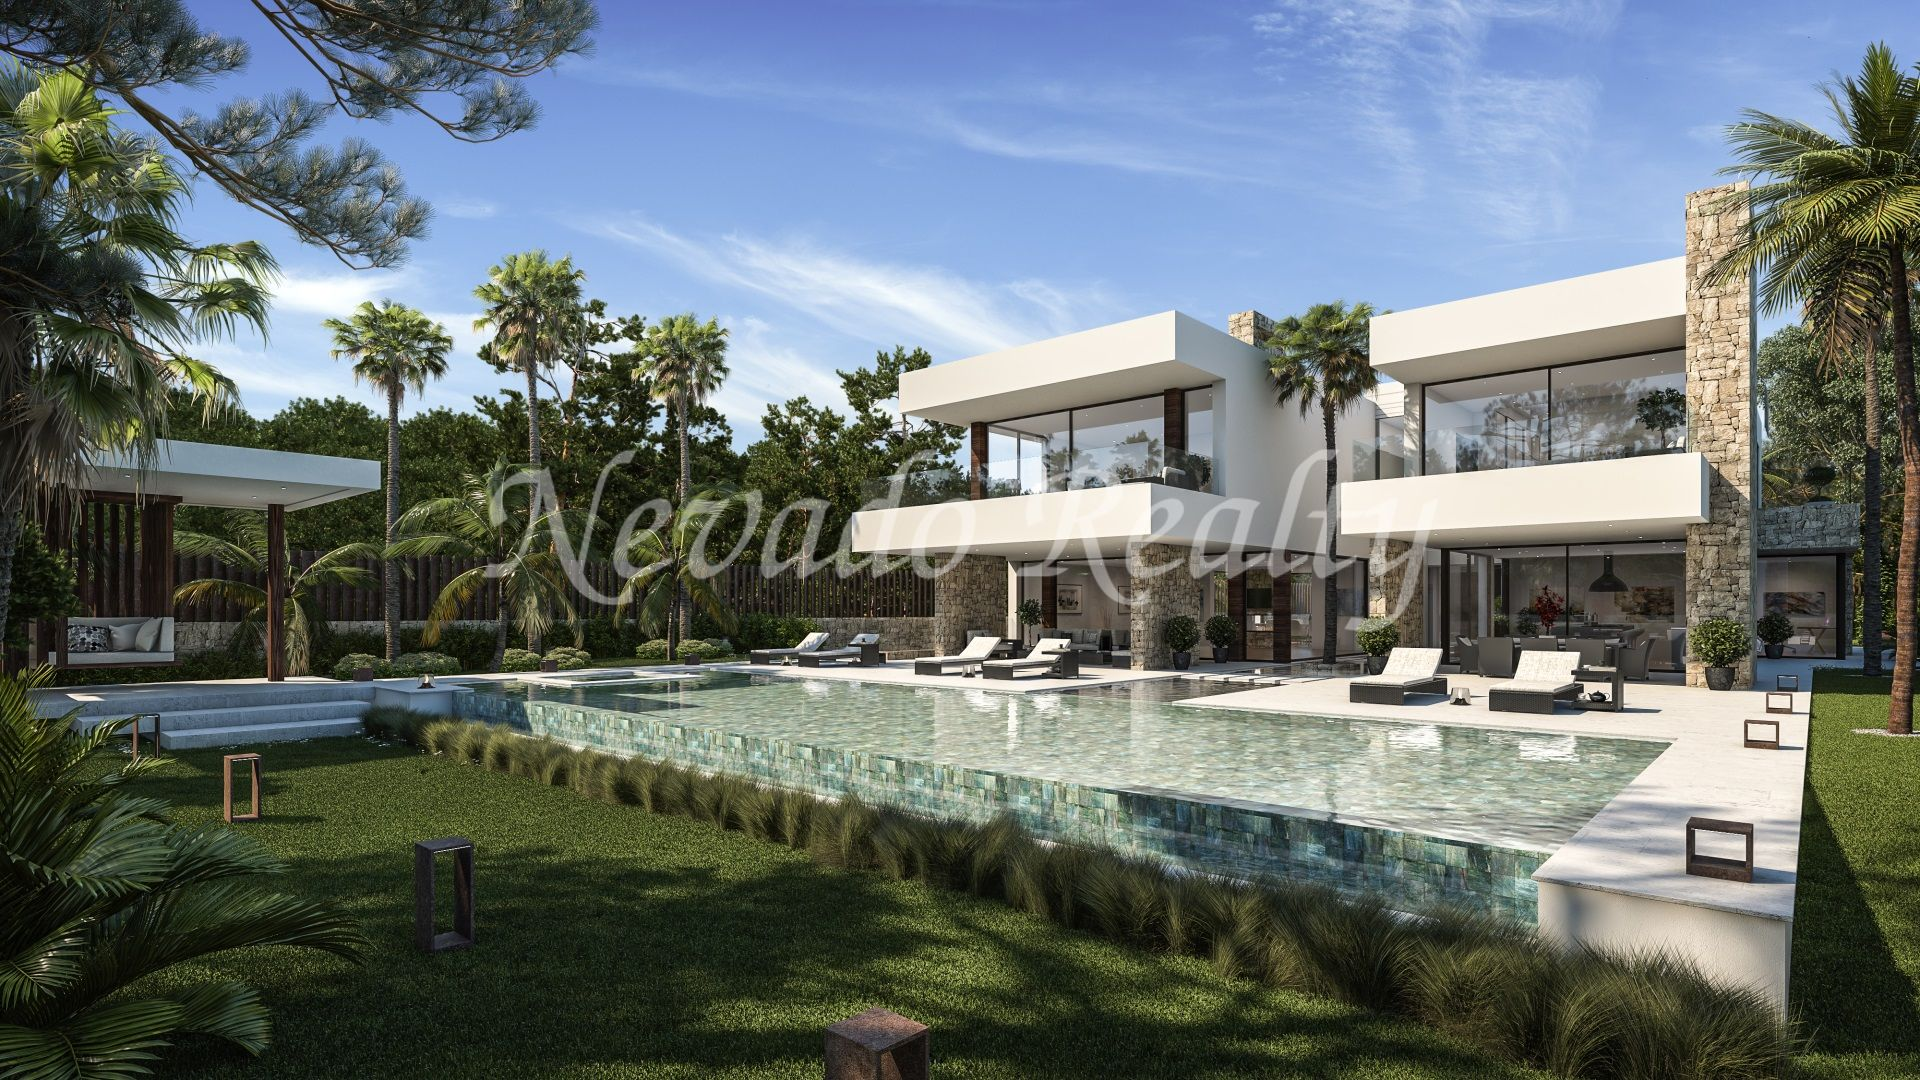 Villa on sale flat a few meters from the beach in Guadalmina Baja